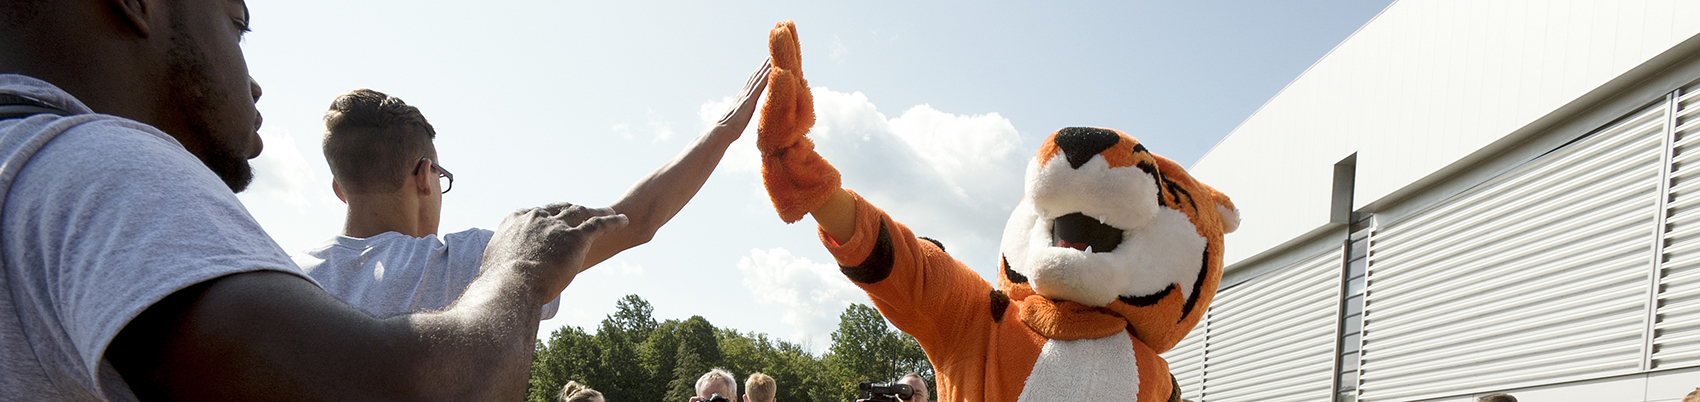 Ritchie the tiger high fiving students.